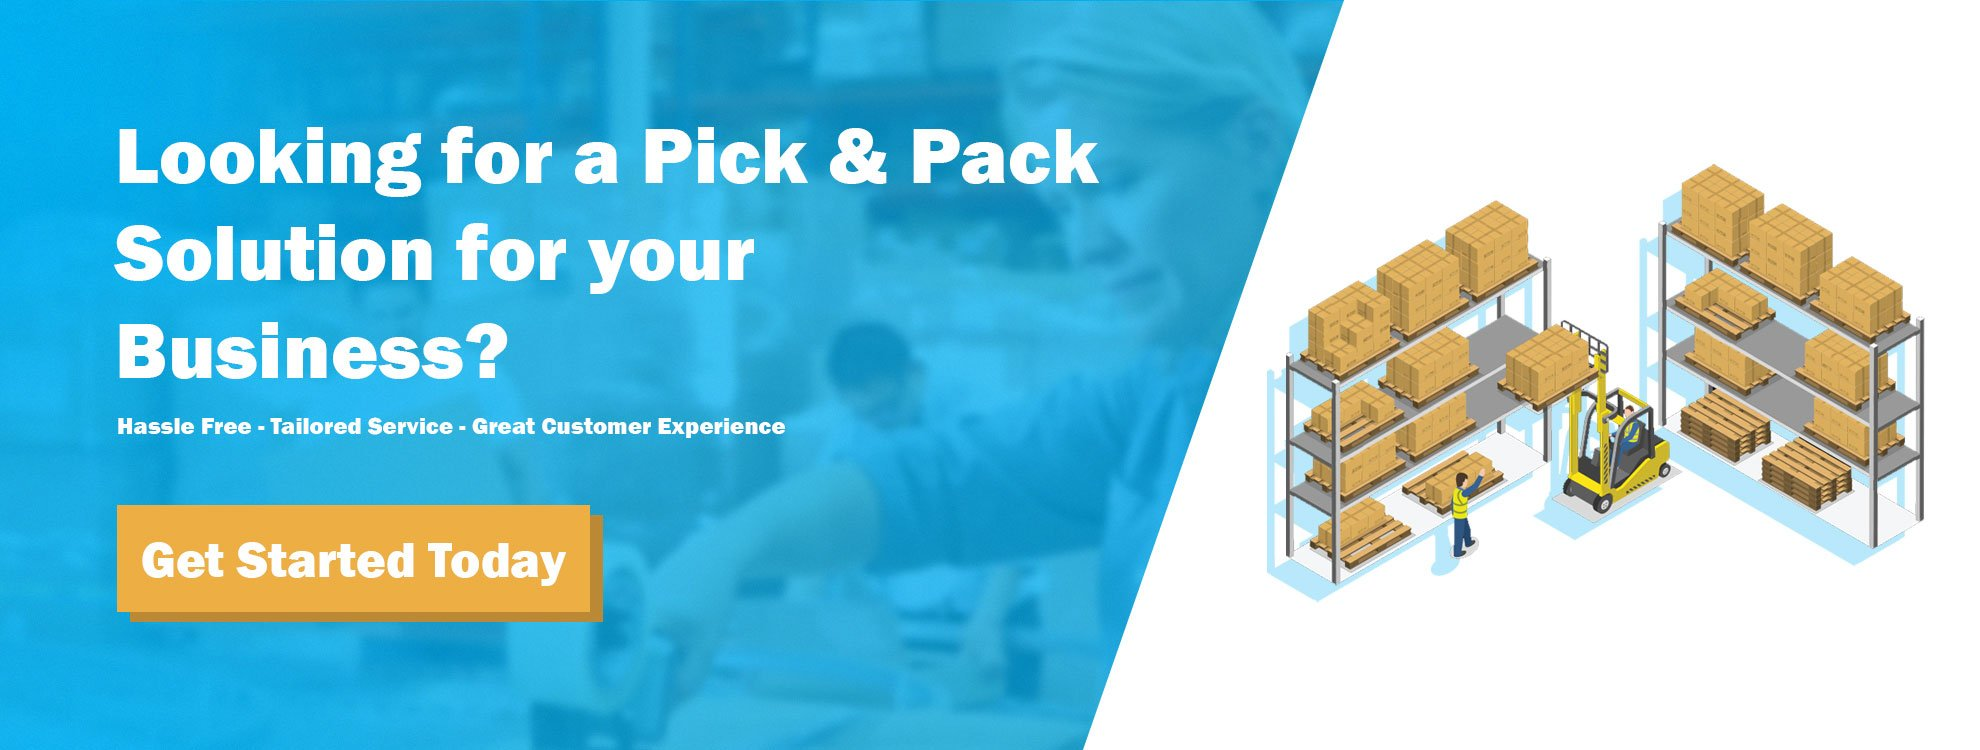 pick and packing solution cta